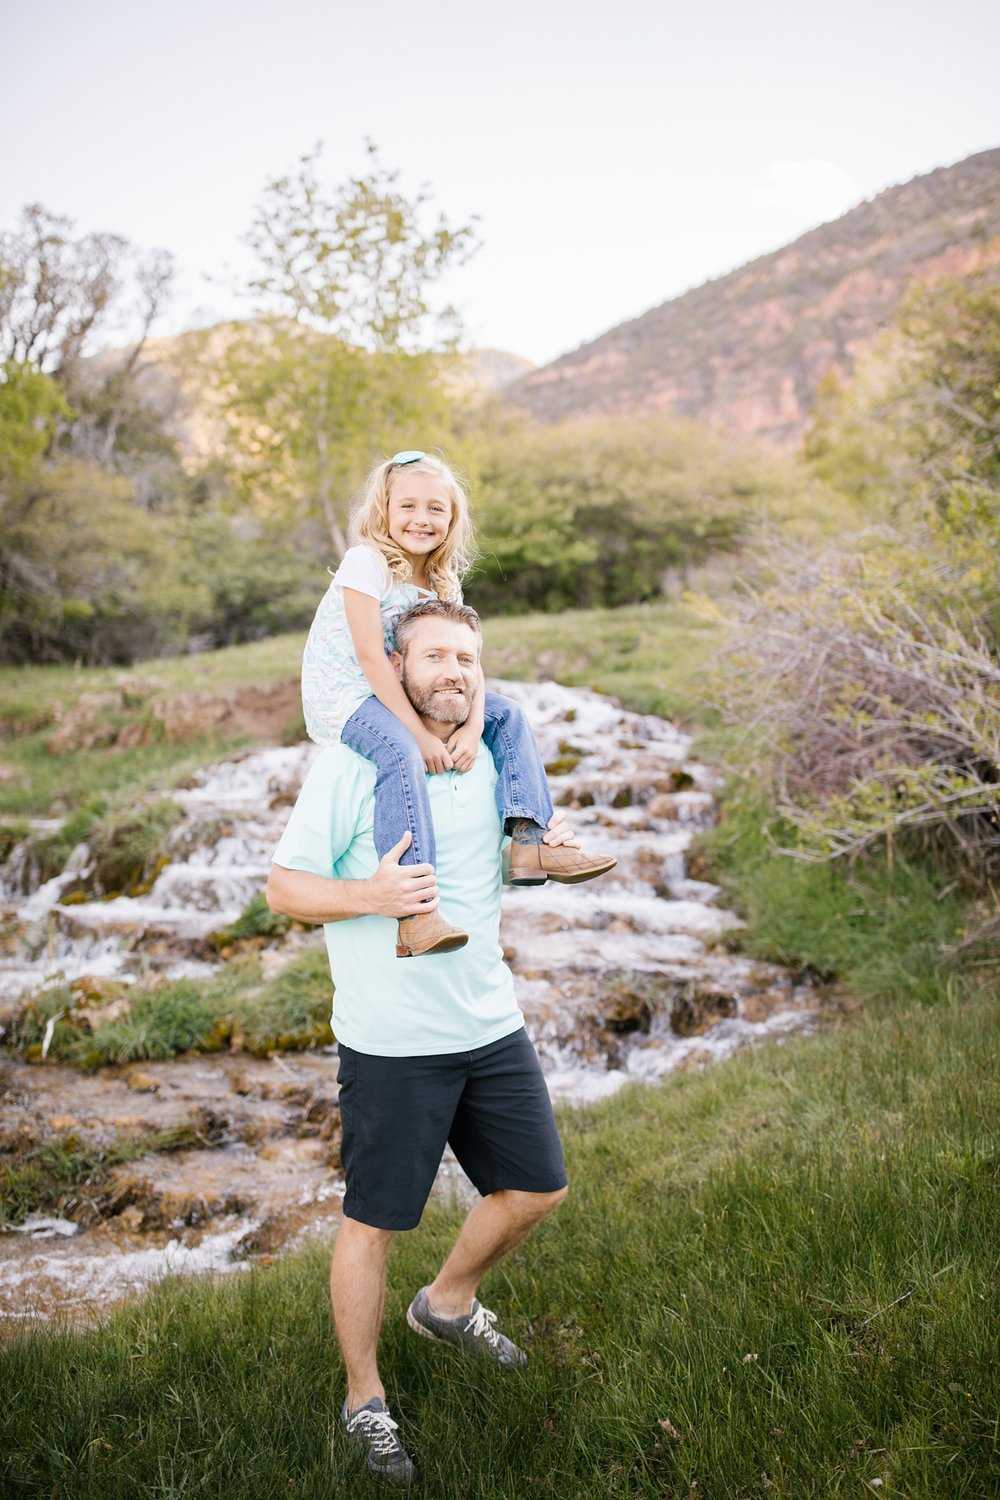 Bagley-85_Lizzie-B-Imagery-Utah-Family-Photographer-Central-Utah-Extended-Family-Session.jpg